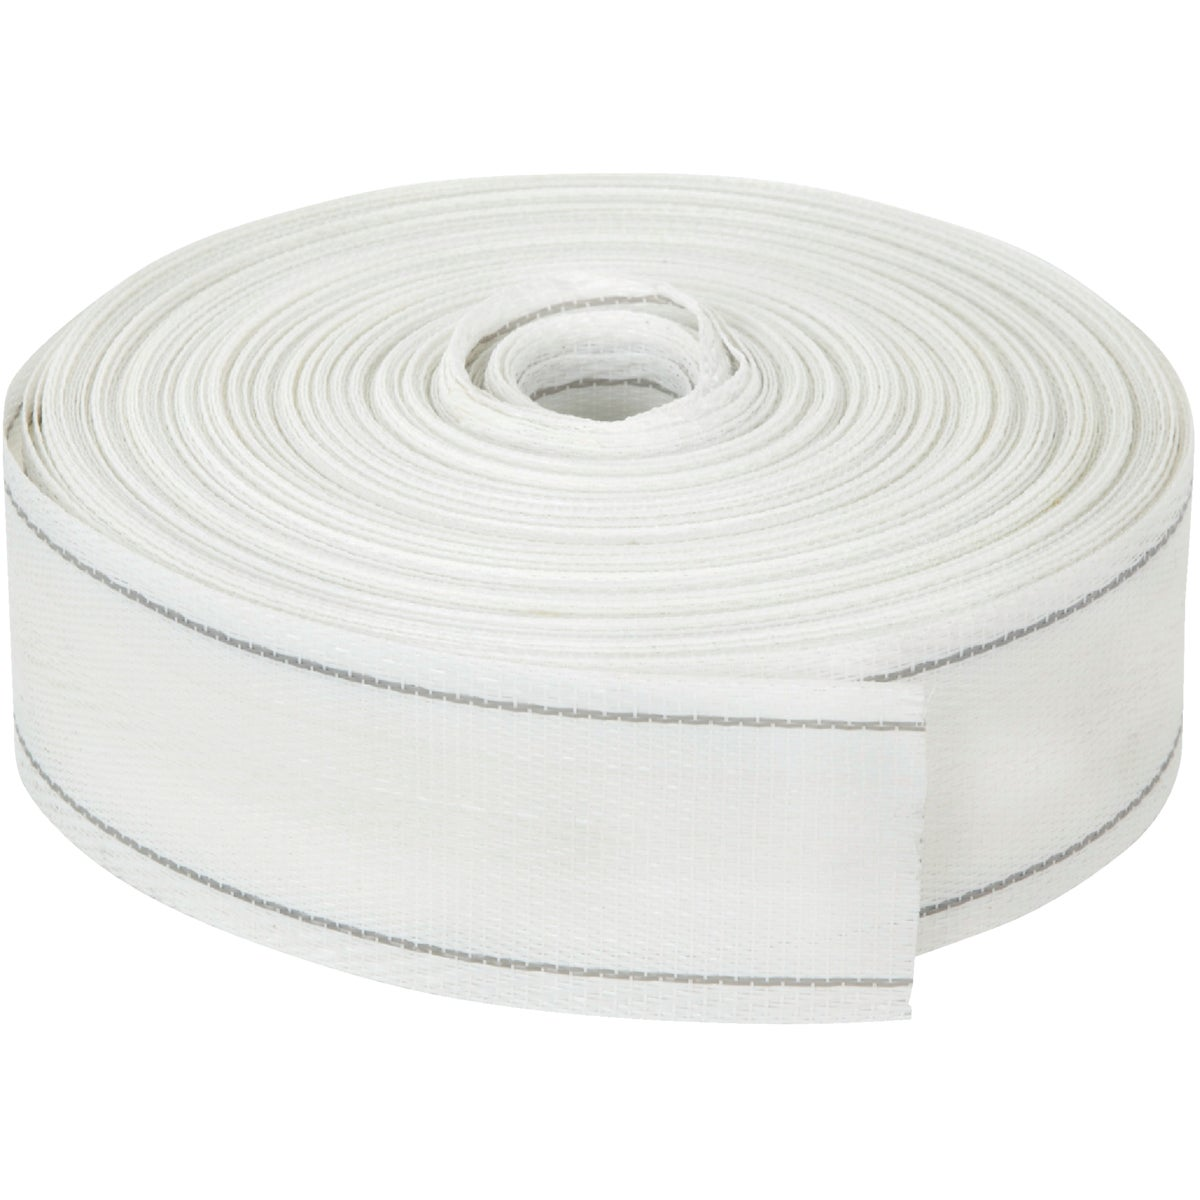 39' WHITE WEBBING - PW39W by Thermwell Prods Co